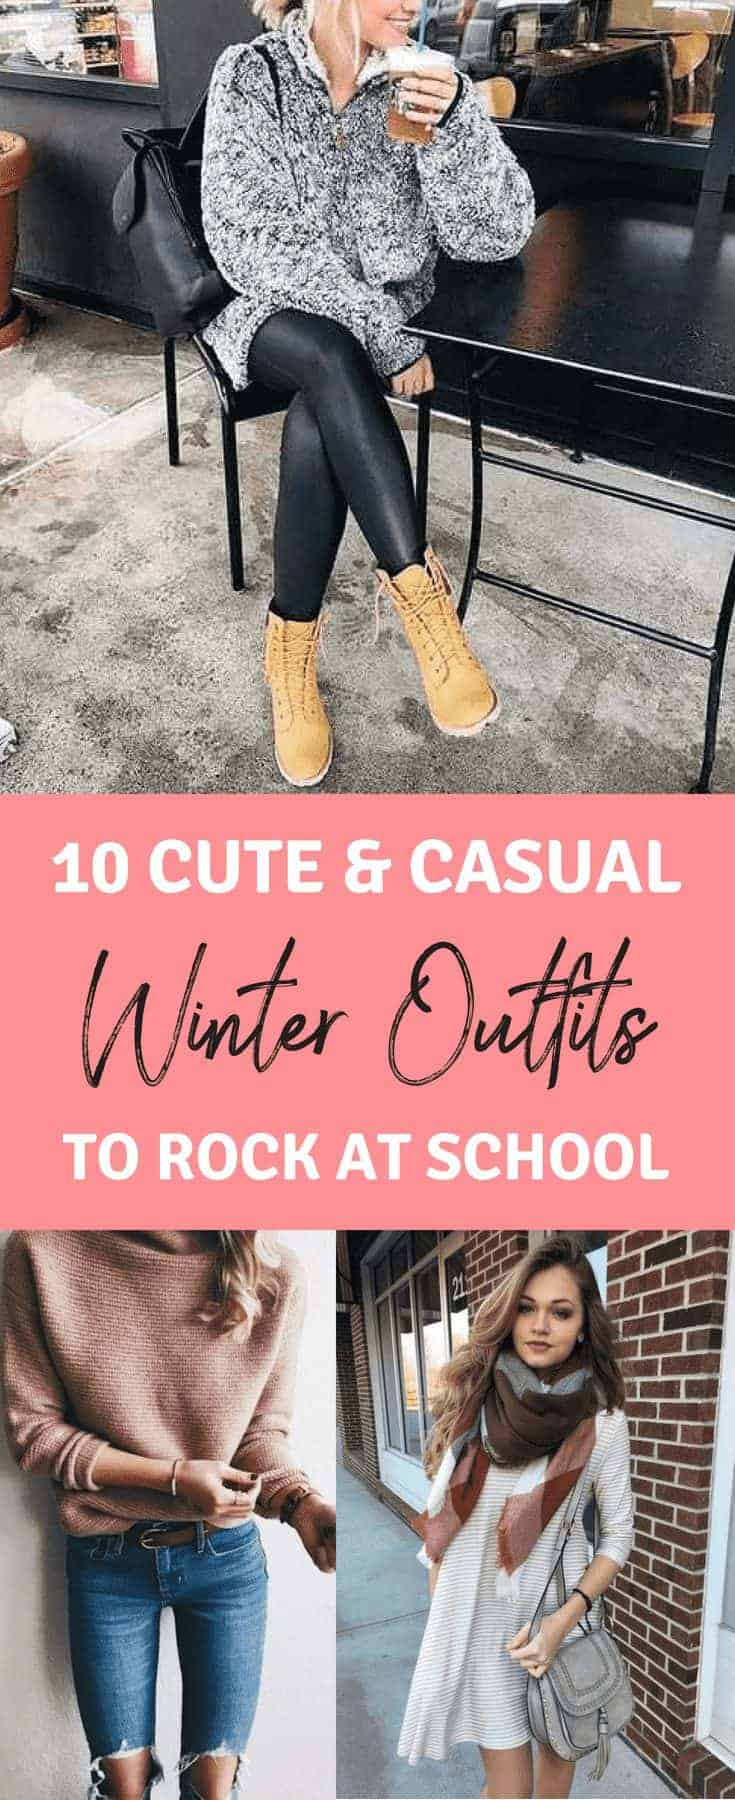 10 Cute & Casual Winter Outfits to Rock in Cold Weather